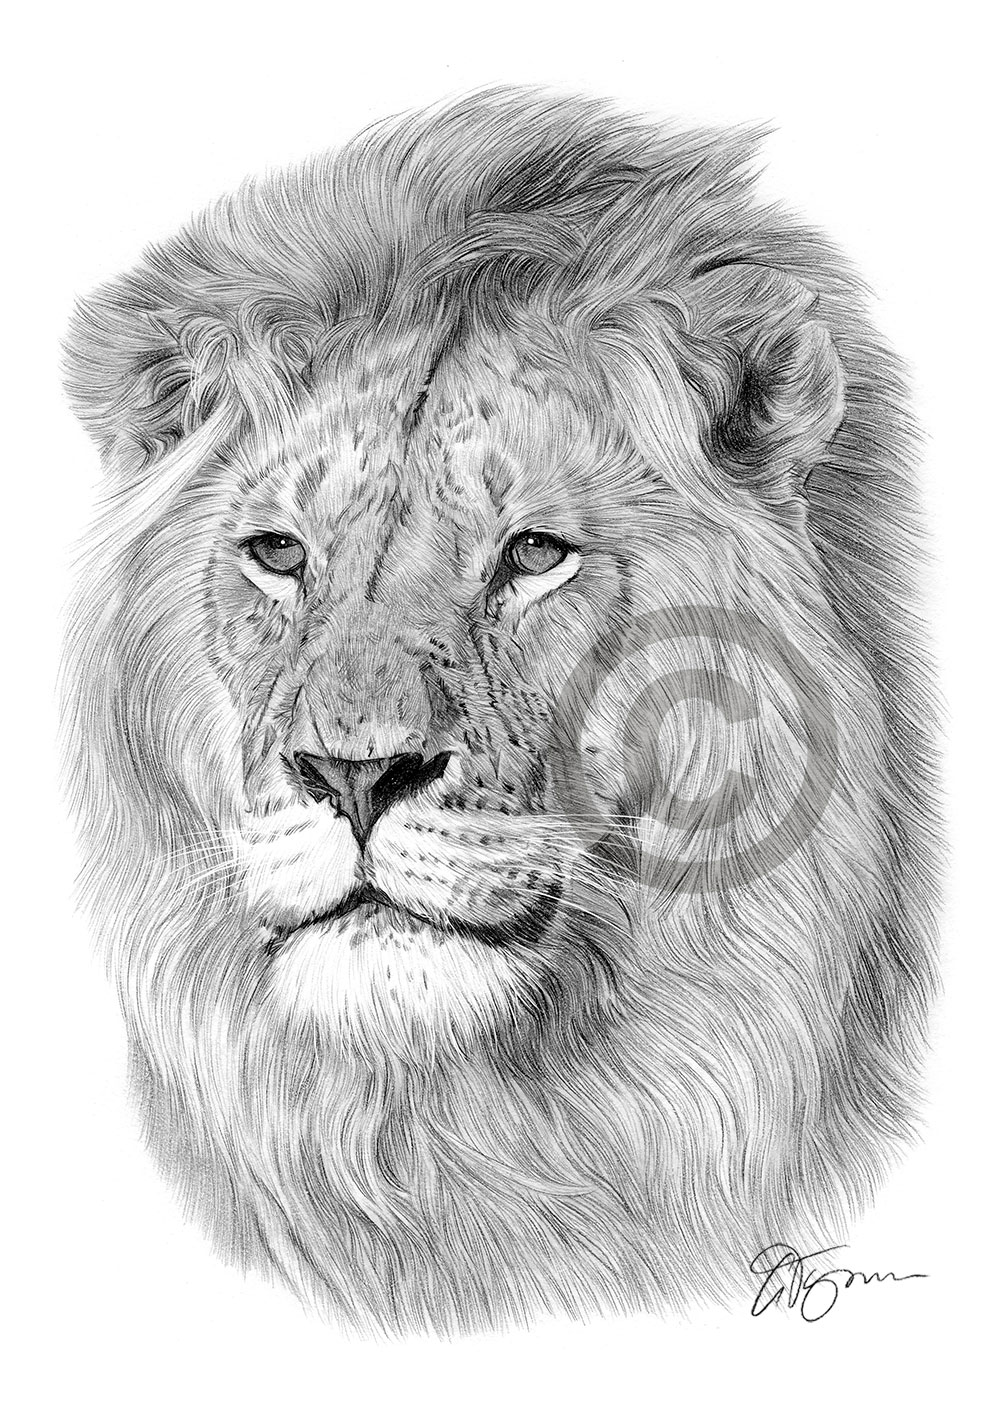 Details about african lion pencil drawing print a3 a4 sizes signed by artist gary tymon